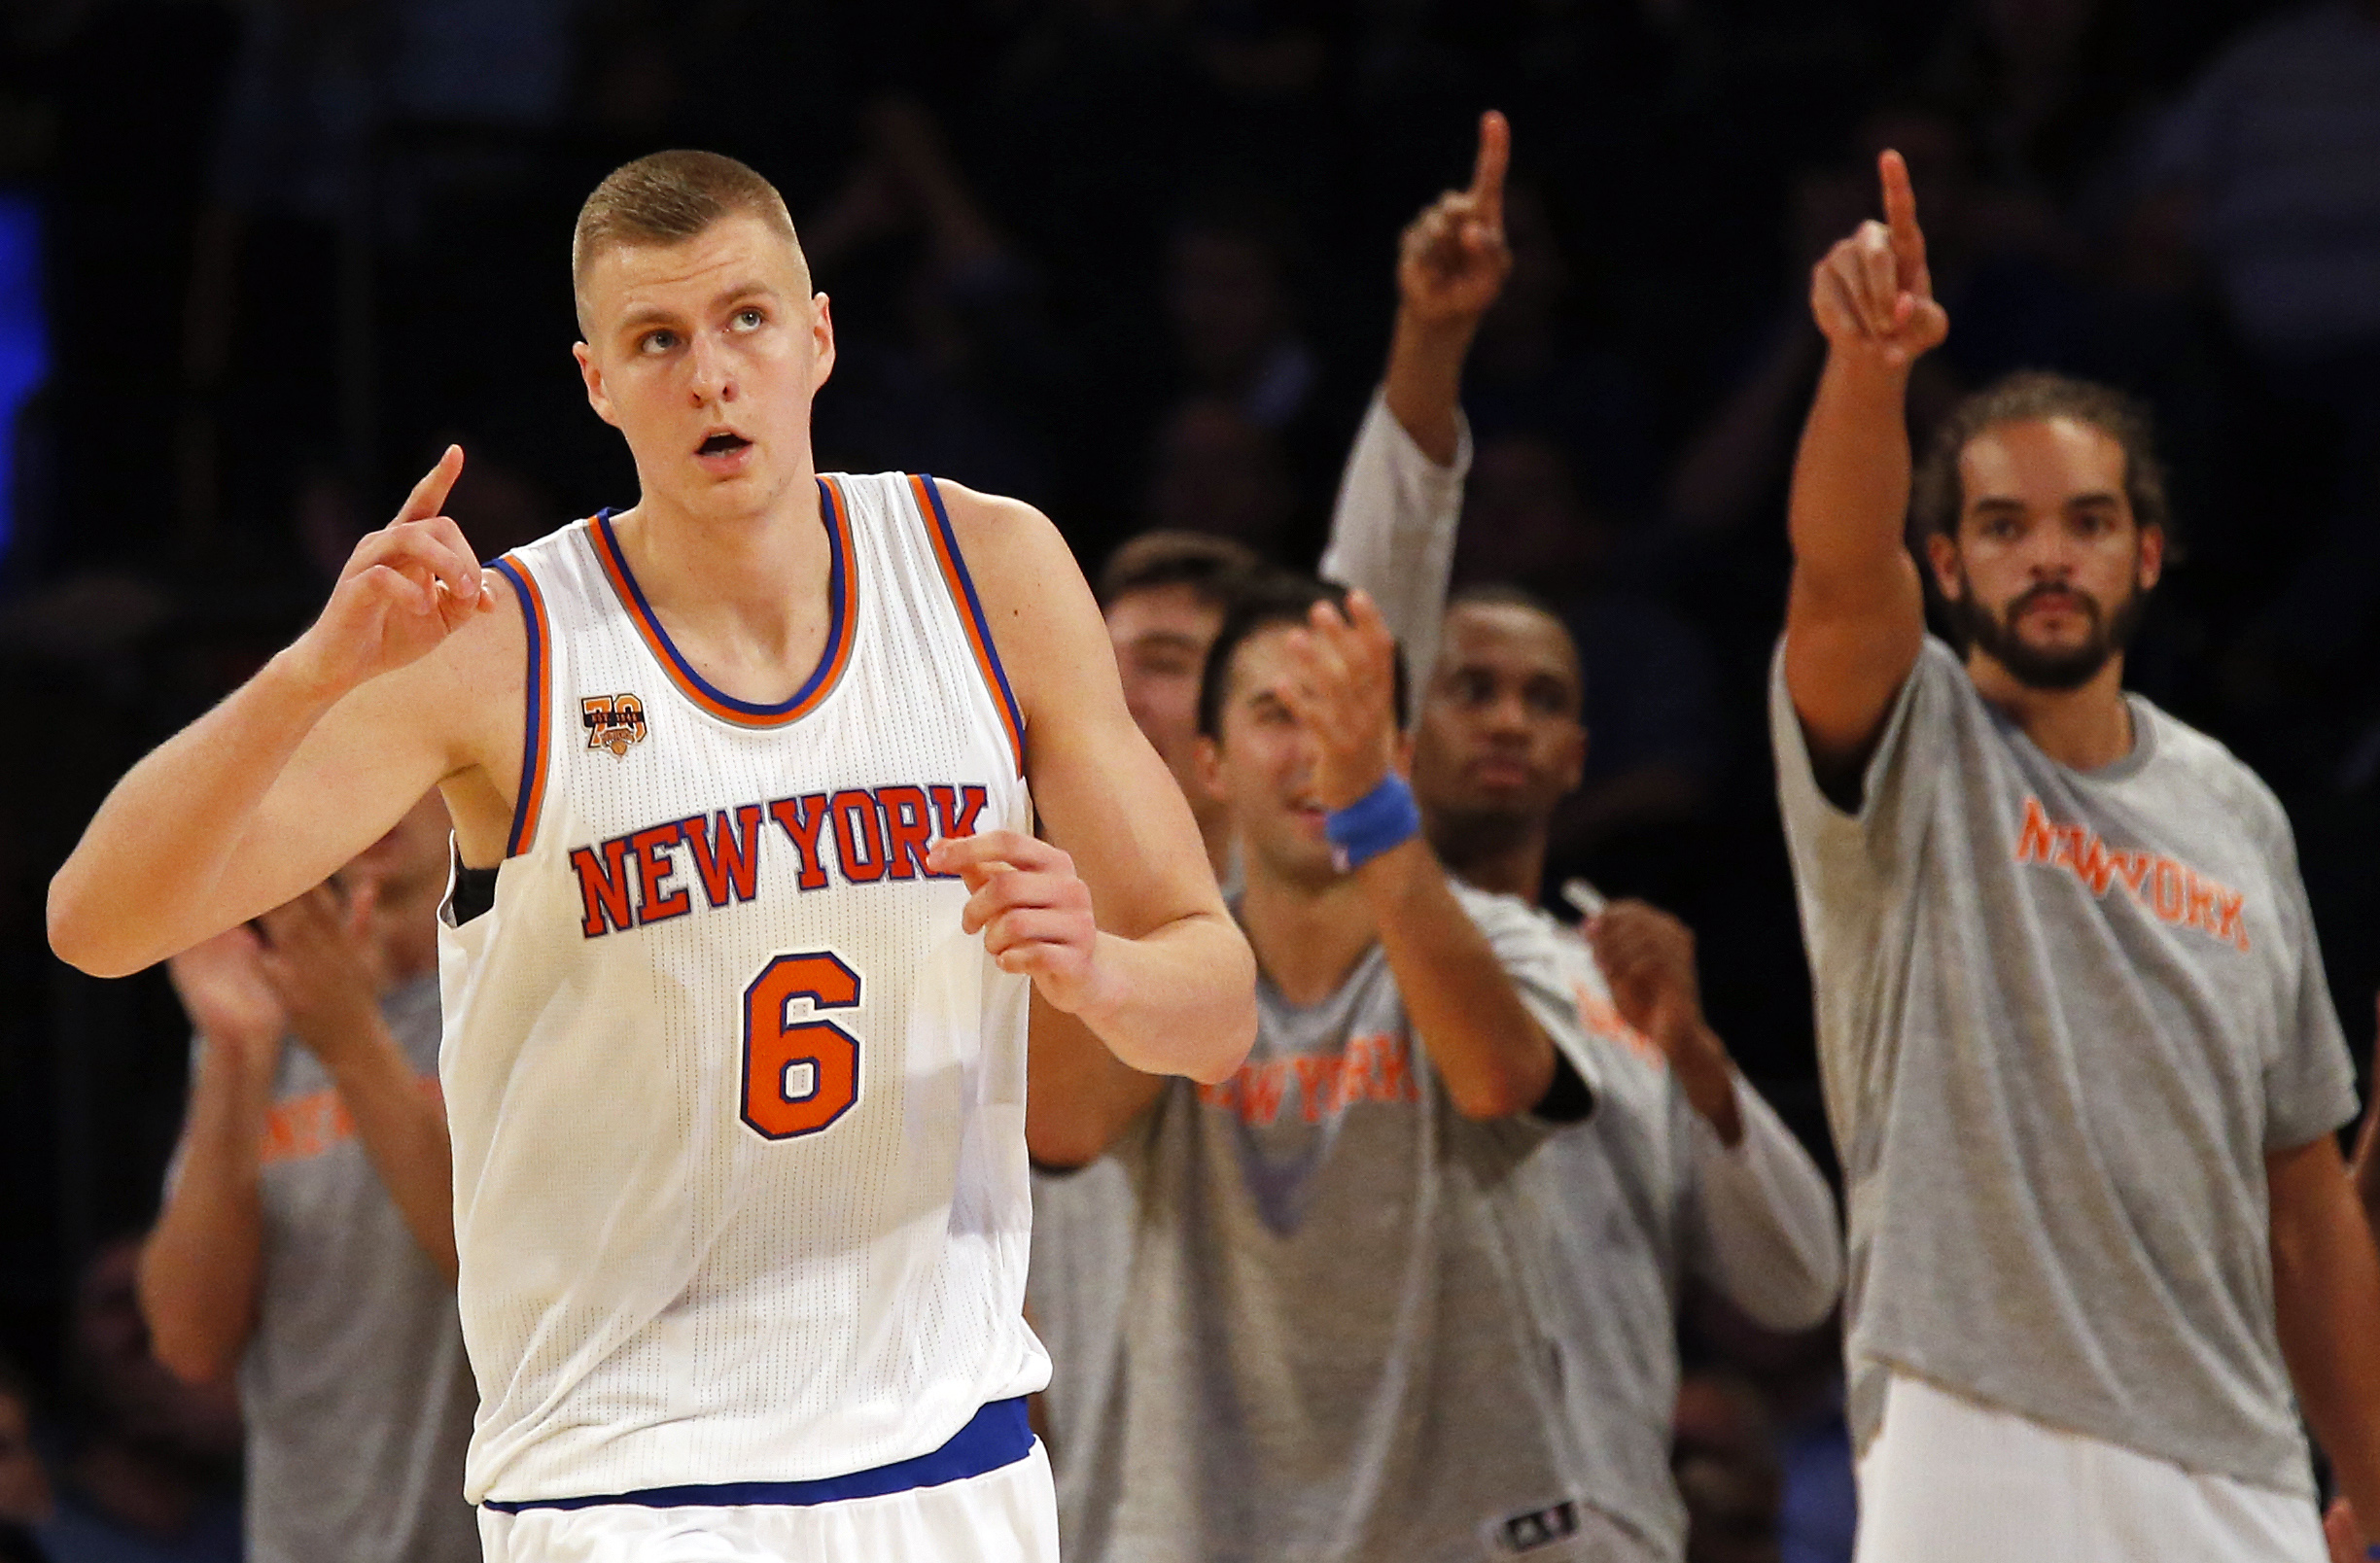 Not So Fast, adidas: Nike Has Chance To Match Kristaps Porzingis Deal (Report)